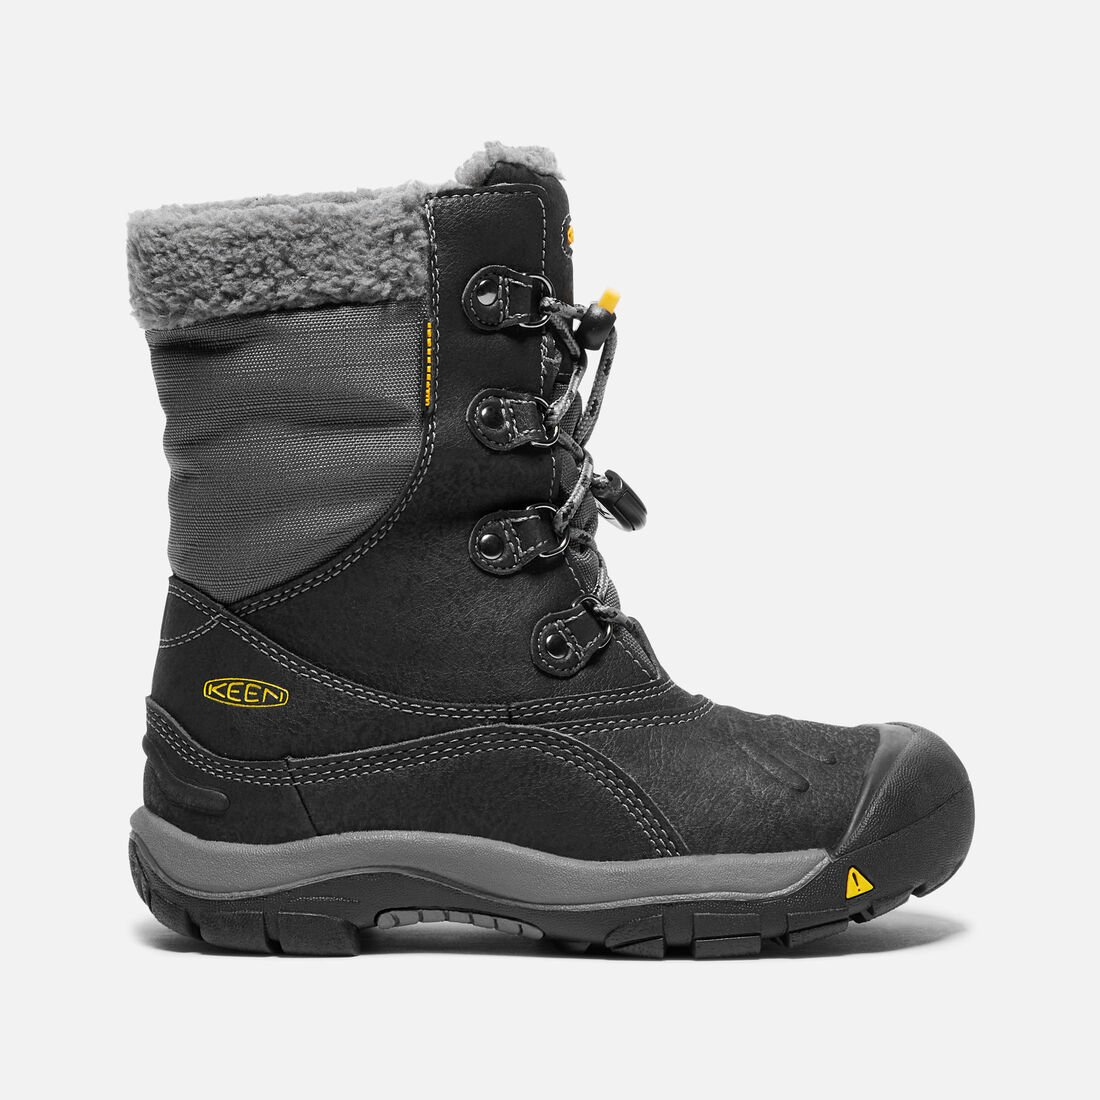 YOUNGER KIDS' BASIN WATERPROOF WINTER BOOTS in Black/Gargoyle - large view.